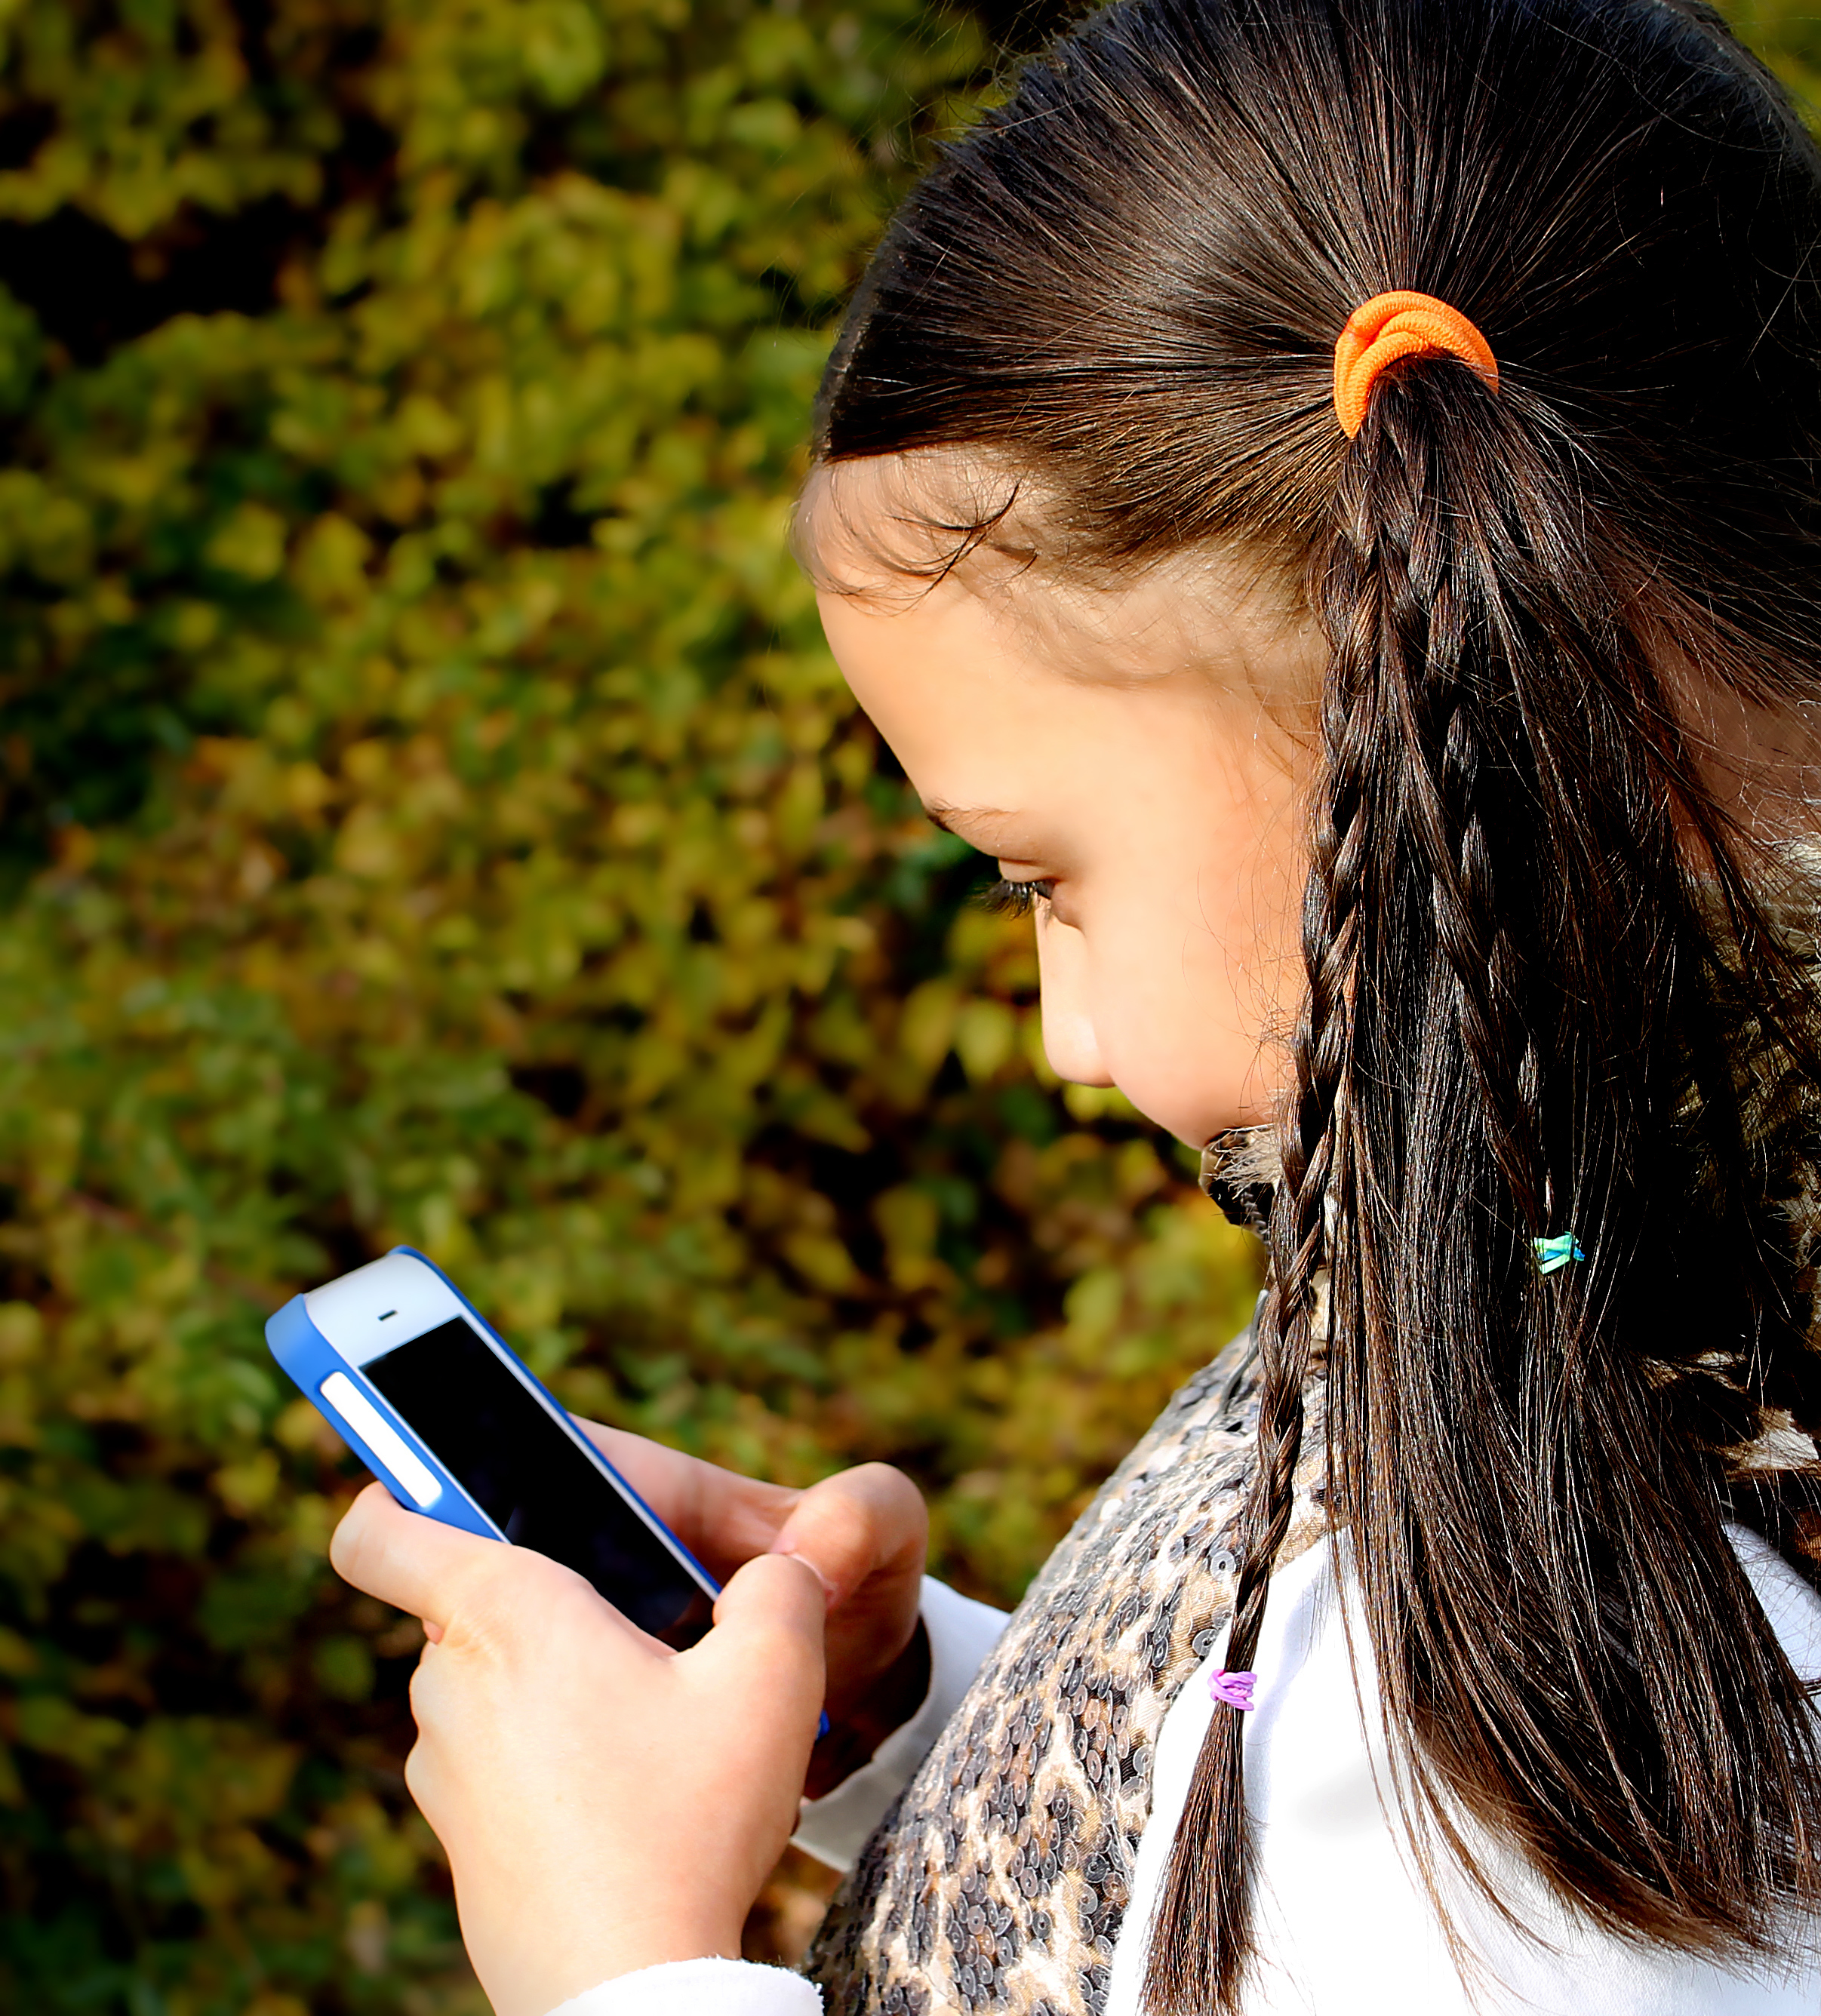 Little girl with ponytails using cell phone in the park.